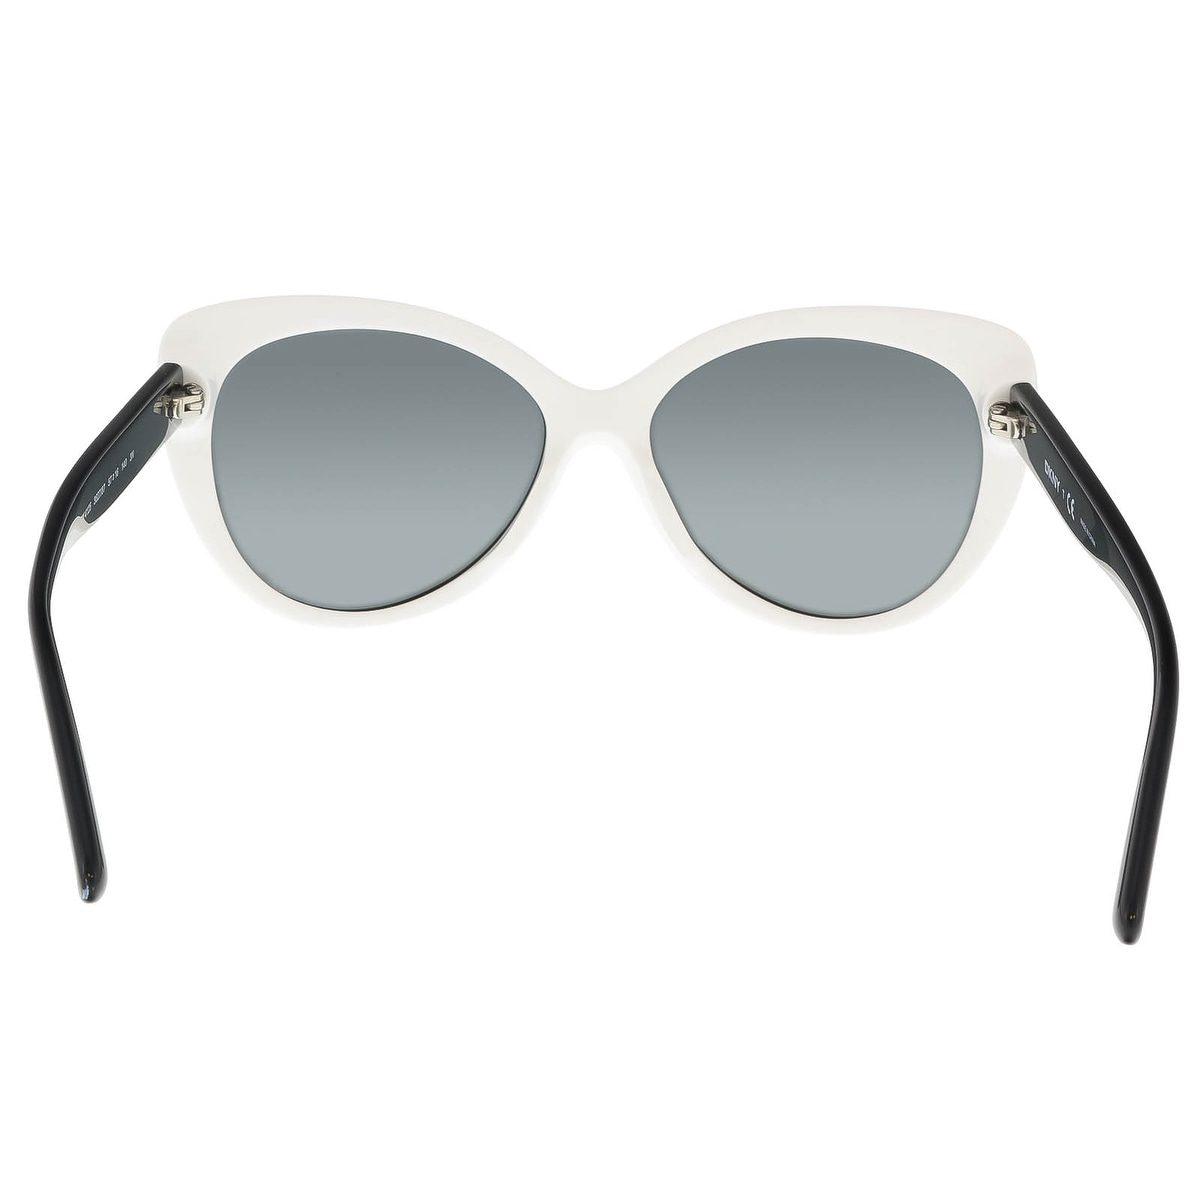 b566862745 Shop Donna Karan DY 4125 3627 87 Black White Cateye Sunglasses - 57-16-140  - Free Shipping On Orders Over  45 - Overstock - 17740638